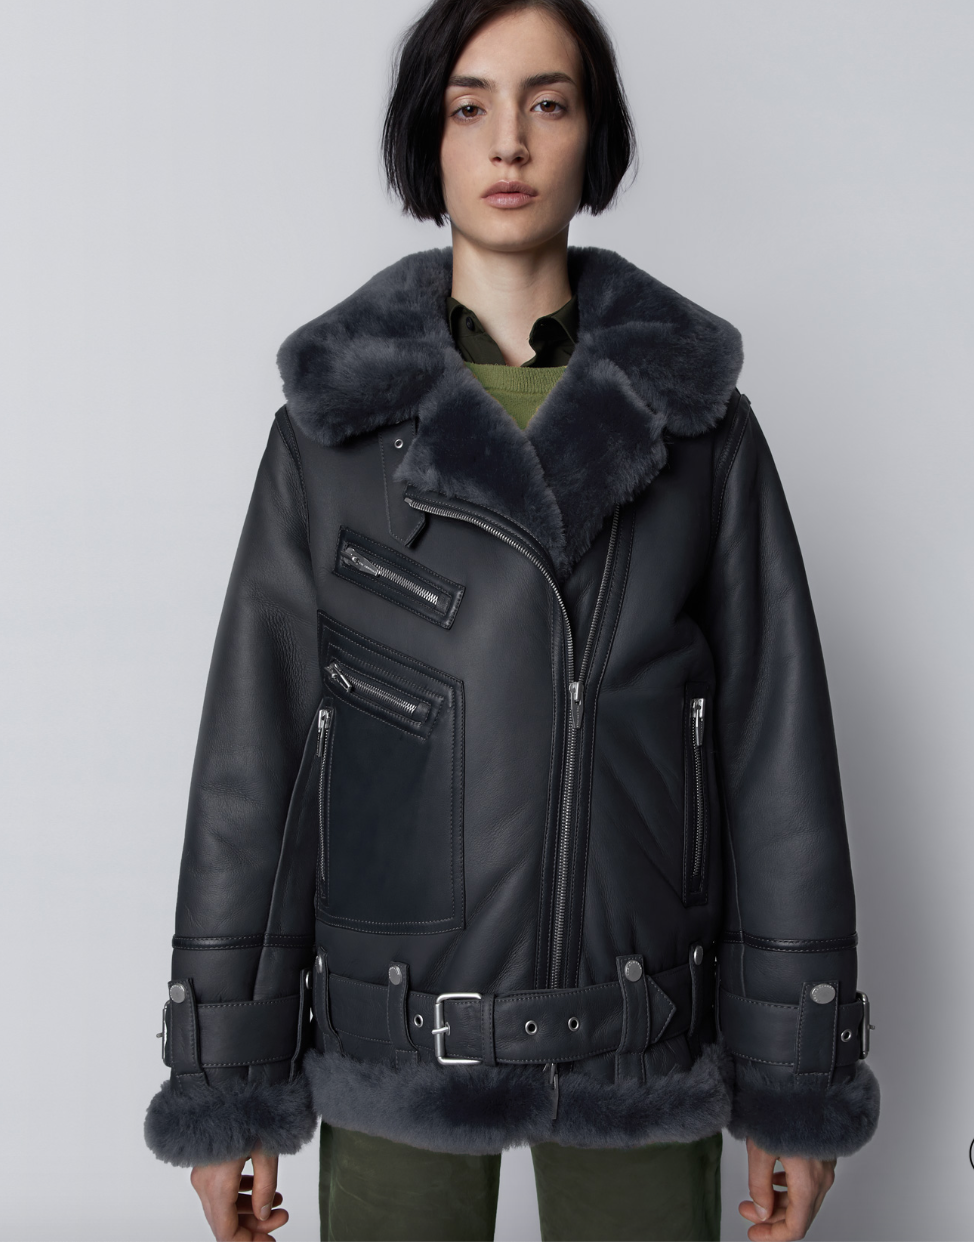 The Arrivals Shearling Jacket Leather Jacket Outerwear [ 1242 x 974 Pixel ]